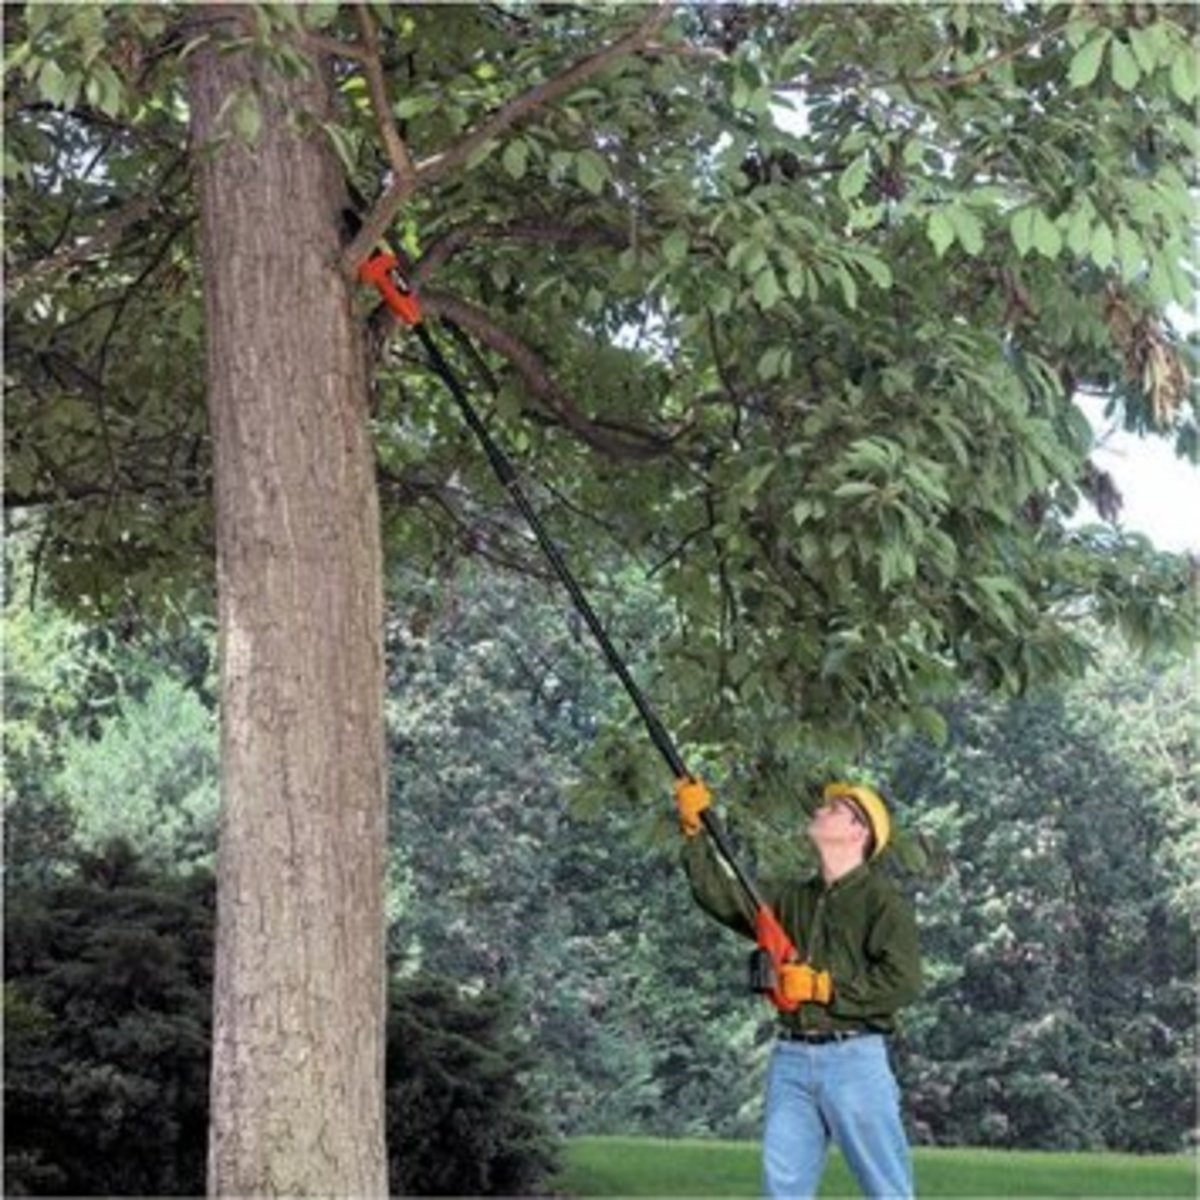 The Best Electric Pole Saws Dengarden